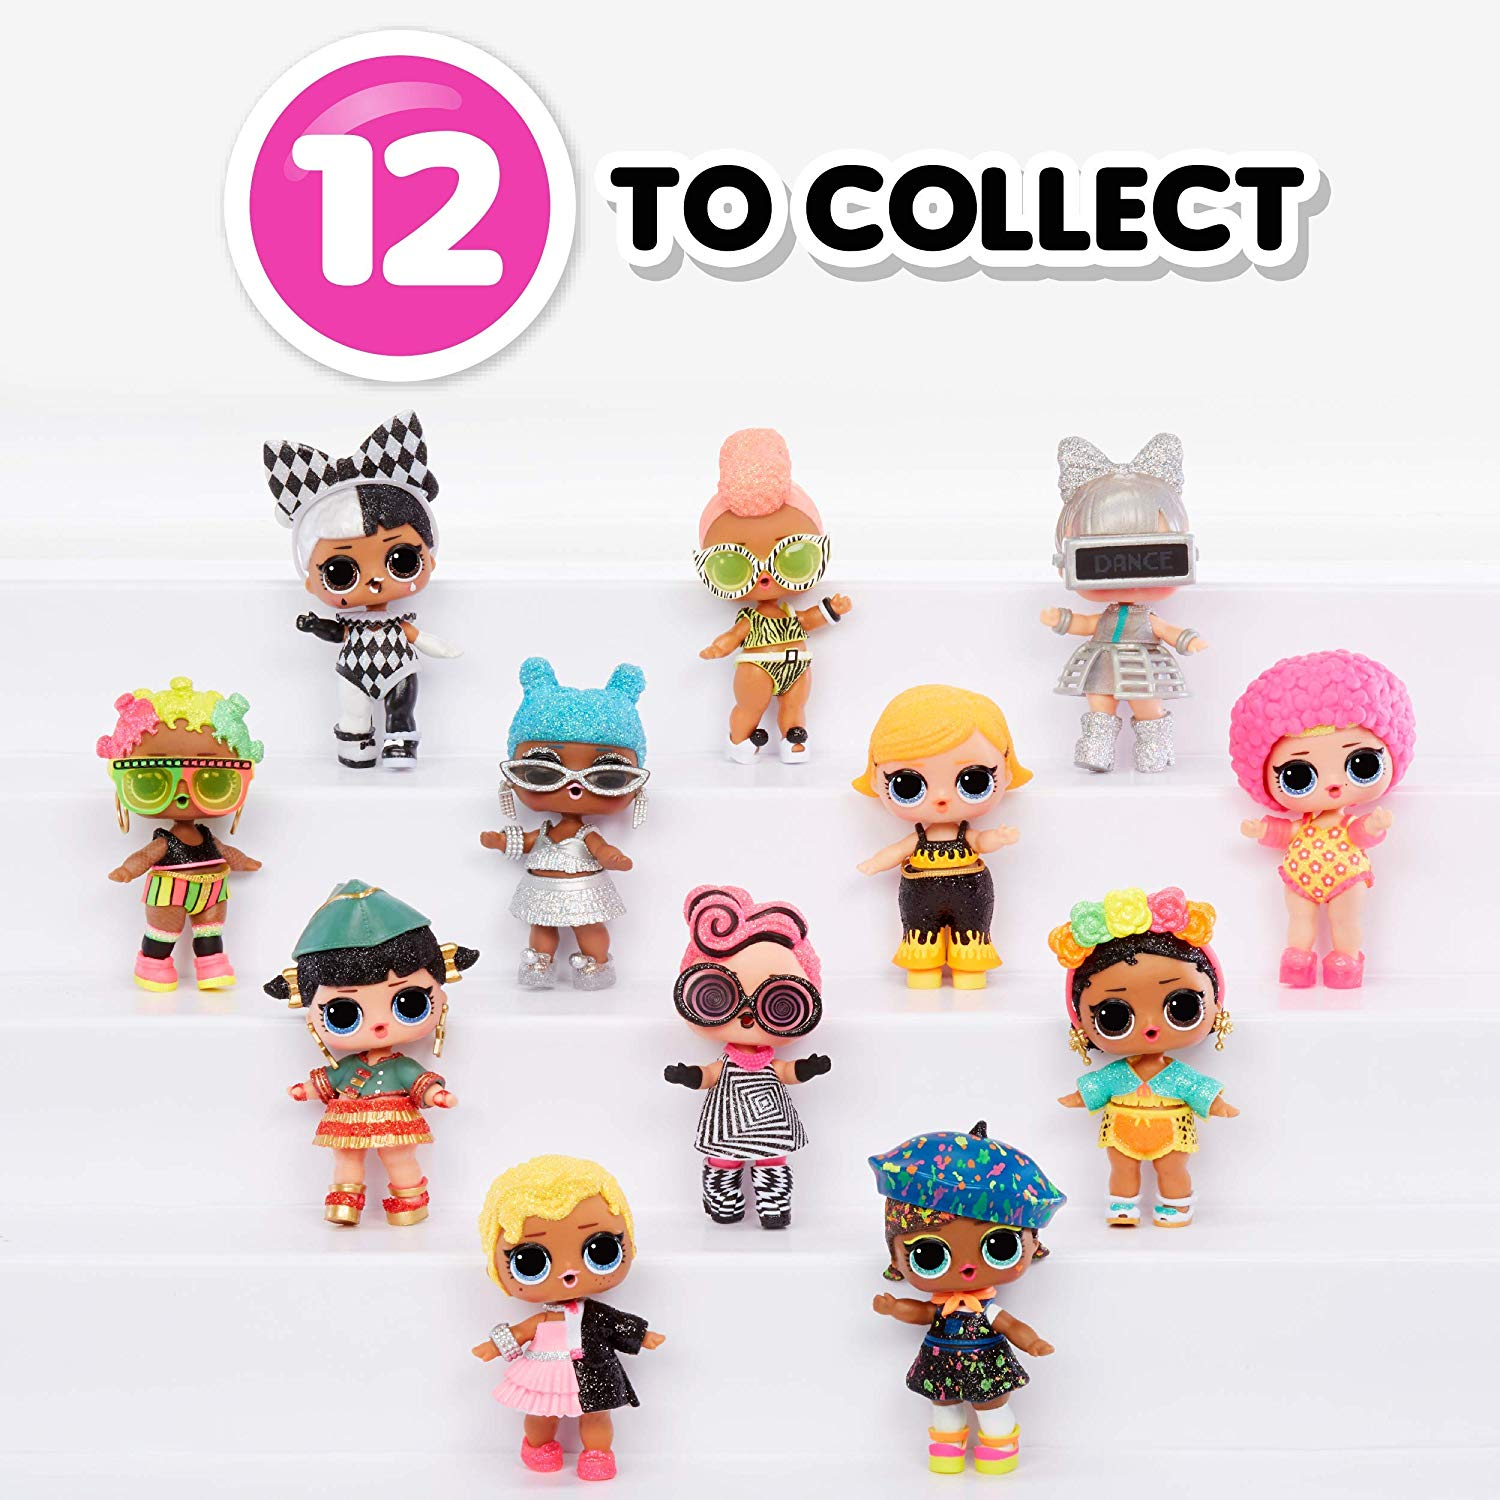 L.O.L. Surprise! Lights Glitter Doll 12 doll to collect